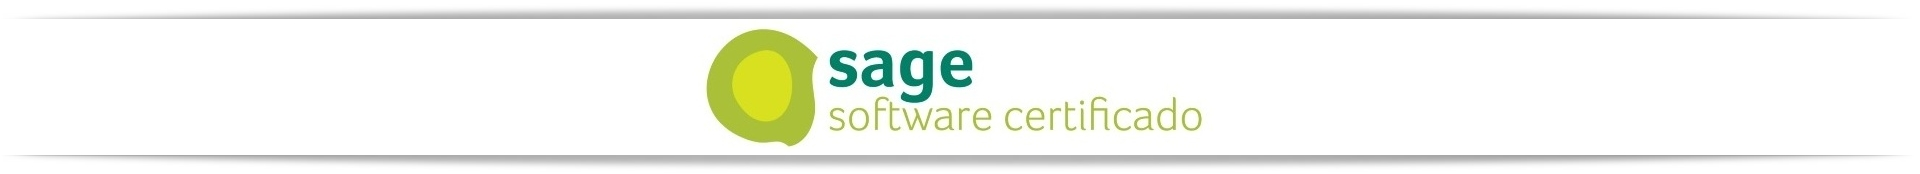 Slider Sage software certificado